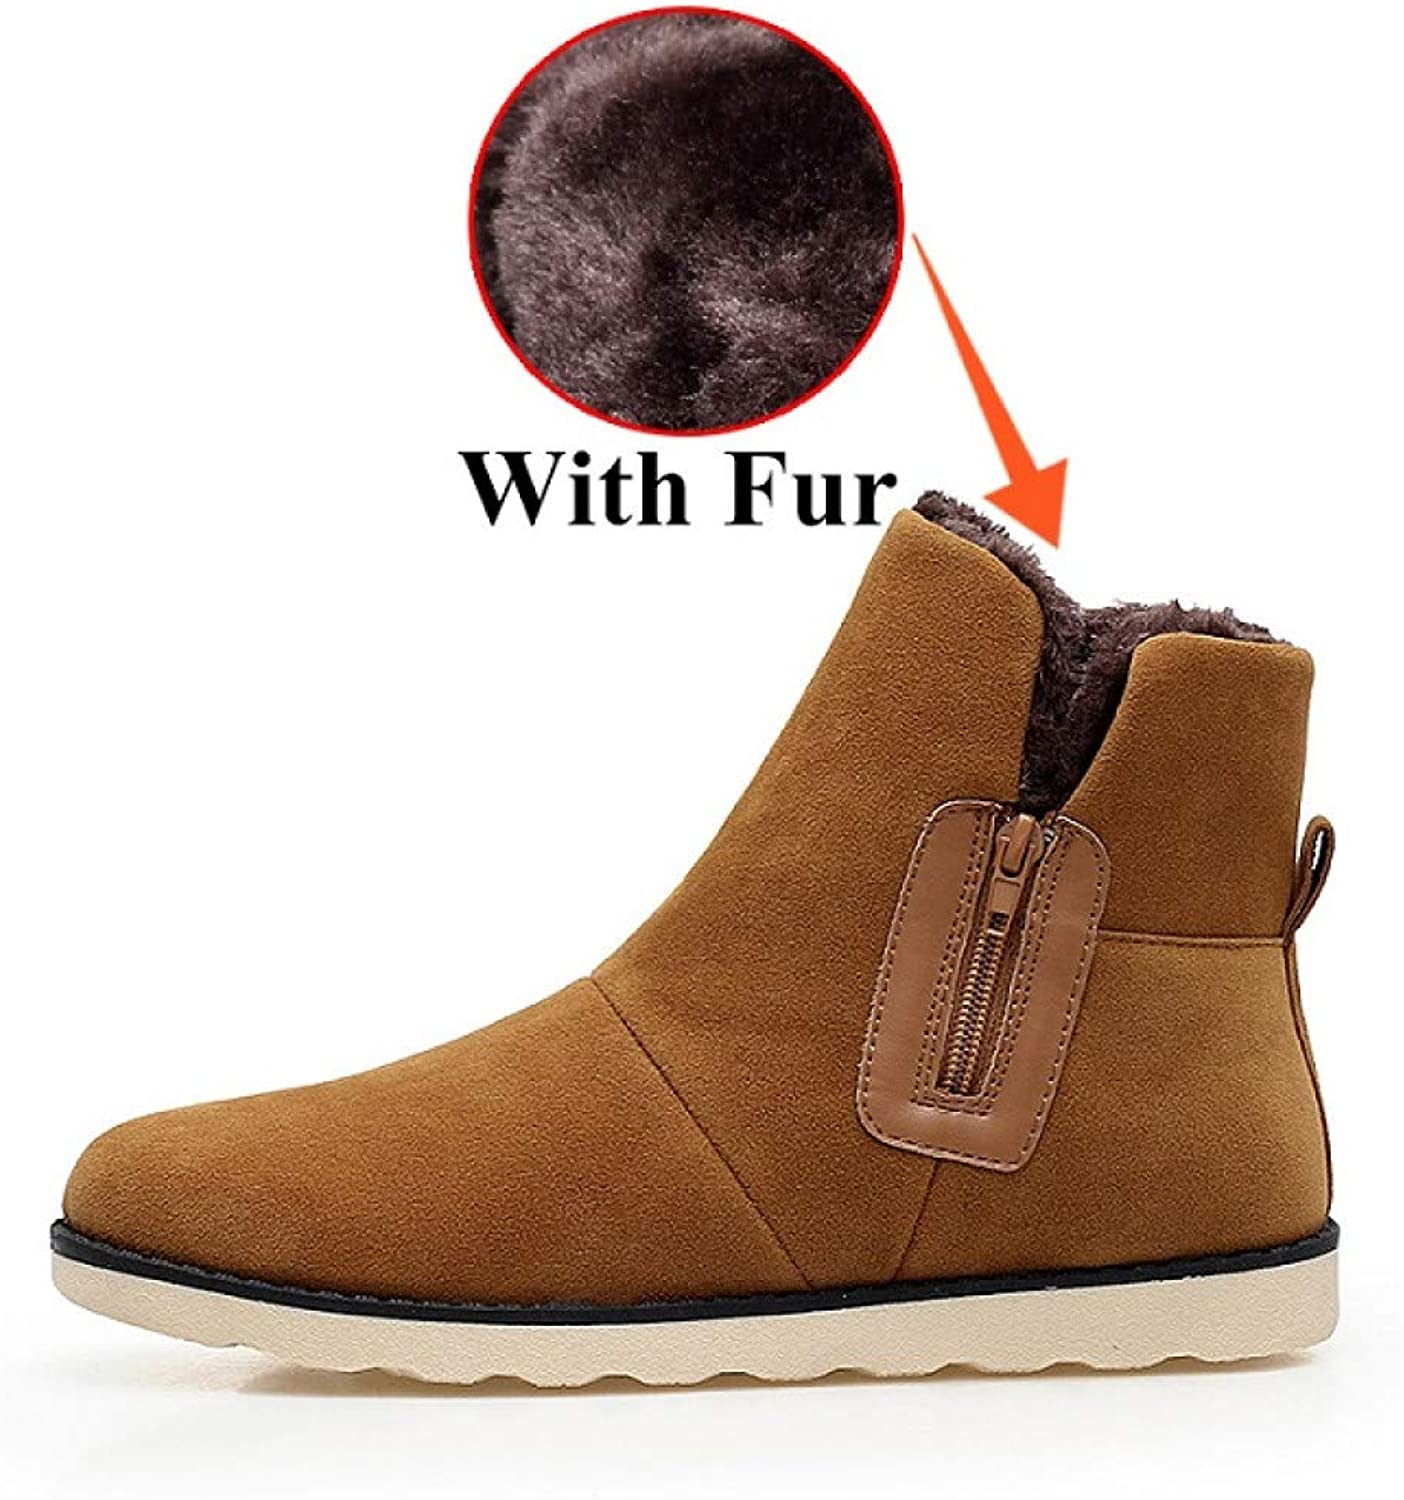 FHCGMX Flock Male shoes For Men Adult Winter With Snow Boots Casual Non-Slip Sneakers Footwear Ankle Boots